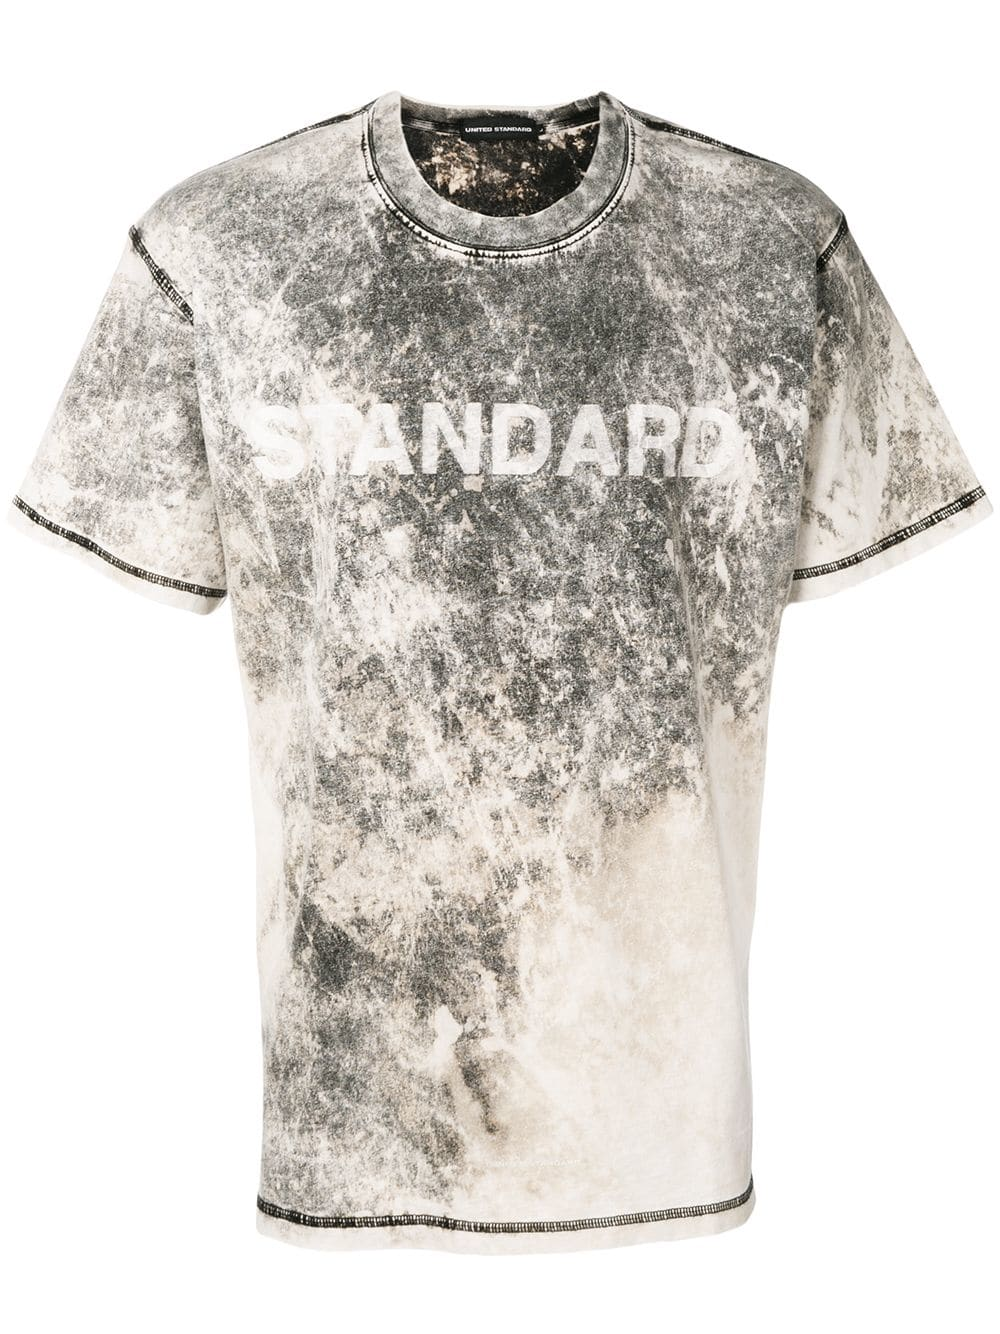 United Standard Overbranded T-Shirt